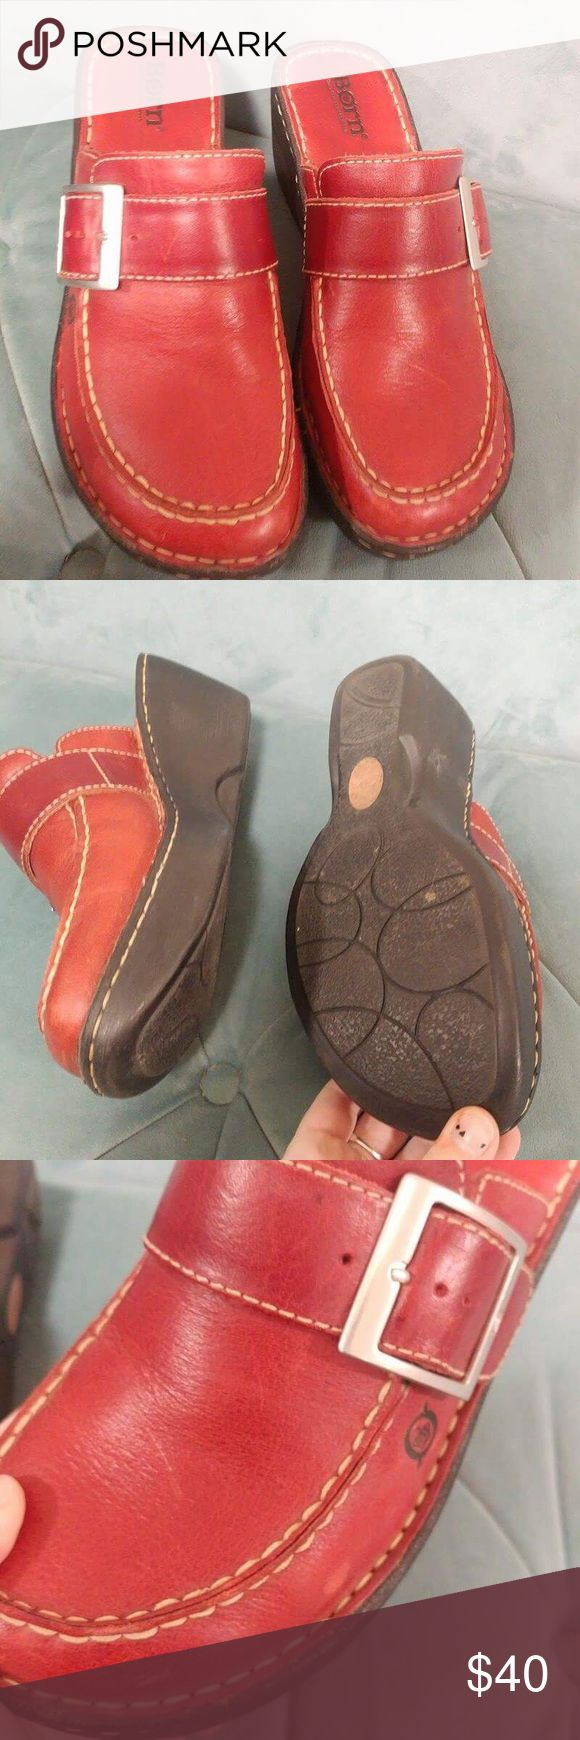 Born size 8 red Mules clogs slip ons Born red slides mules clogs. Worn with some scratches. Super cute color. Size 8 Born Shoes Mules & Clogs